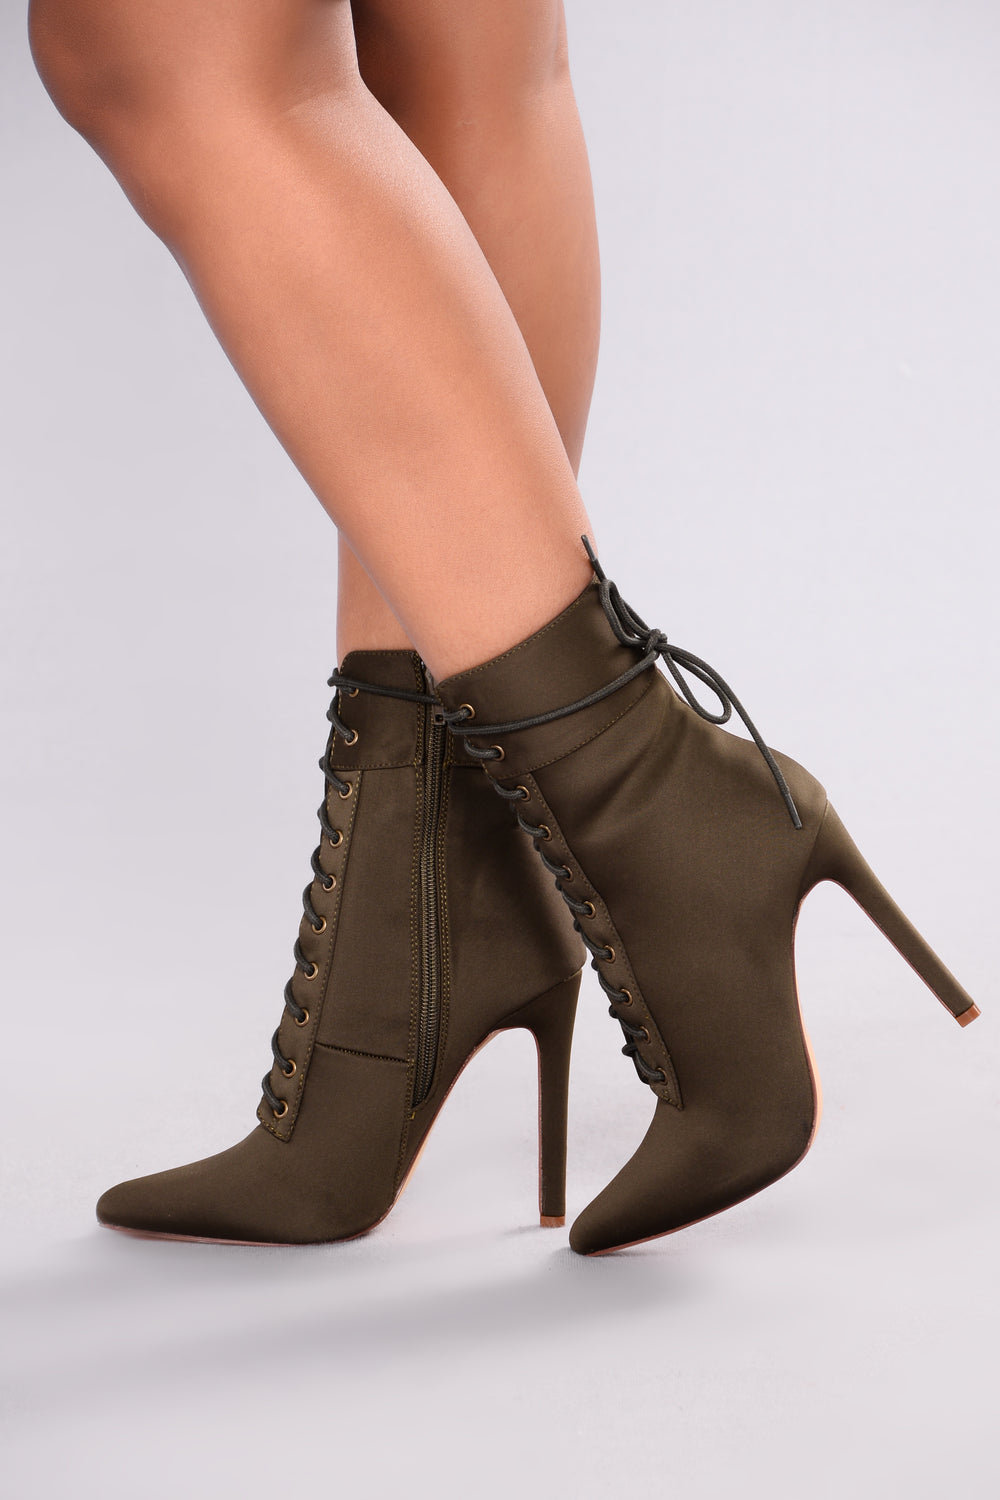 Shine Bright Booties - Olive